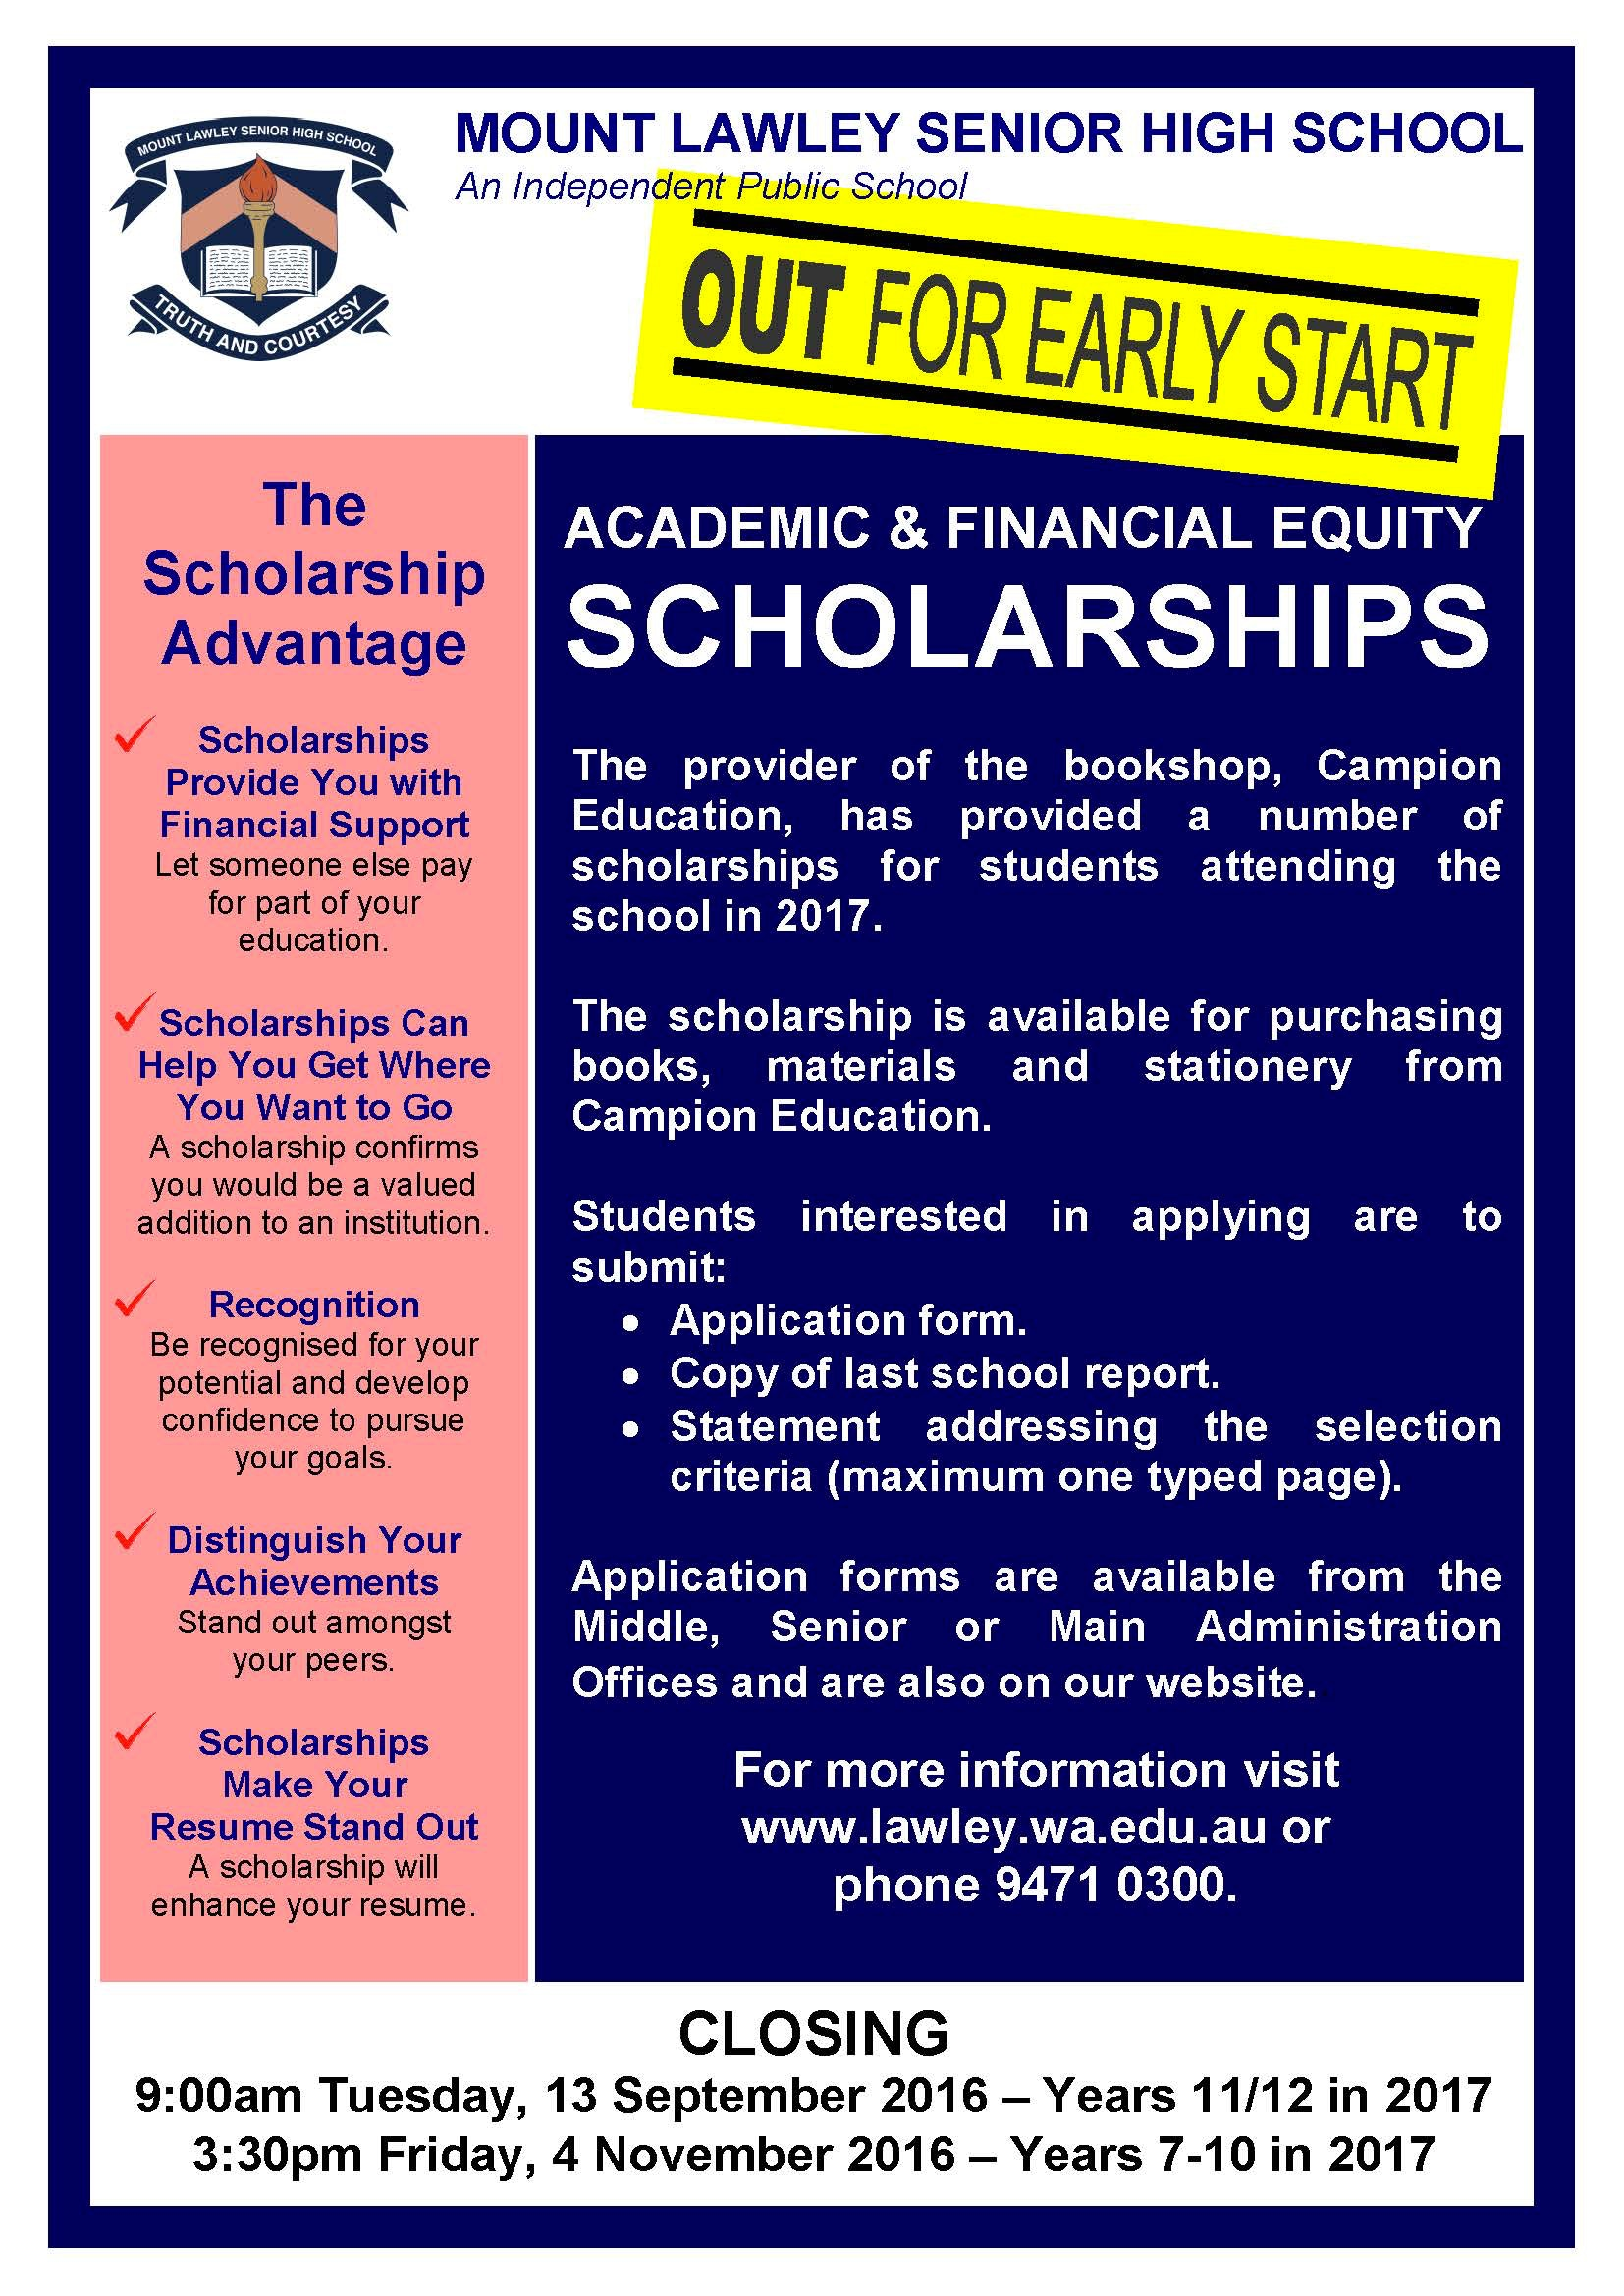 early-start-scholarship-poster-2017-copy.jpg